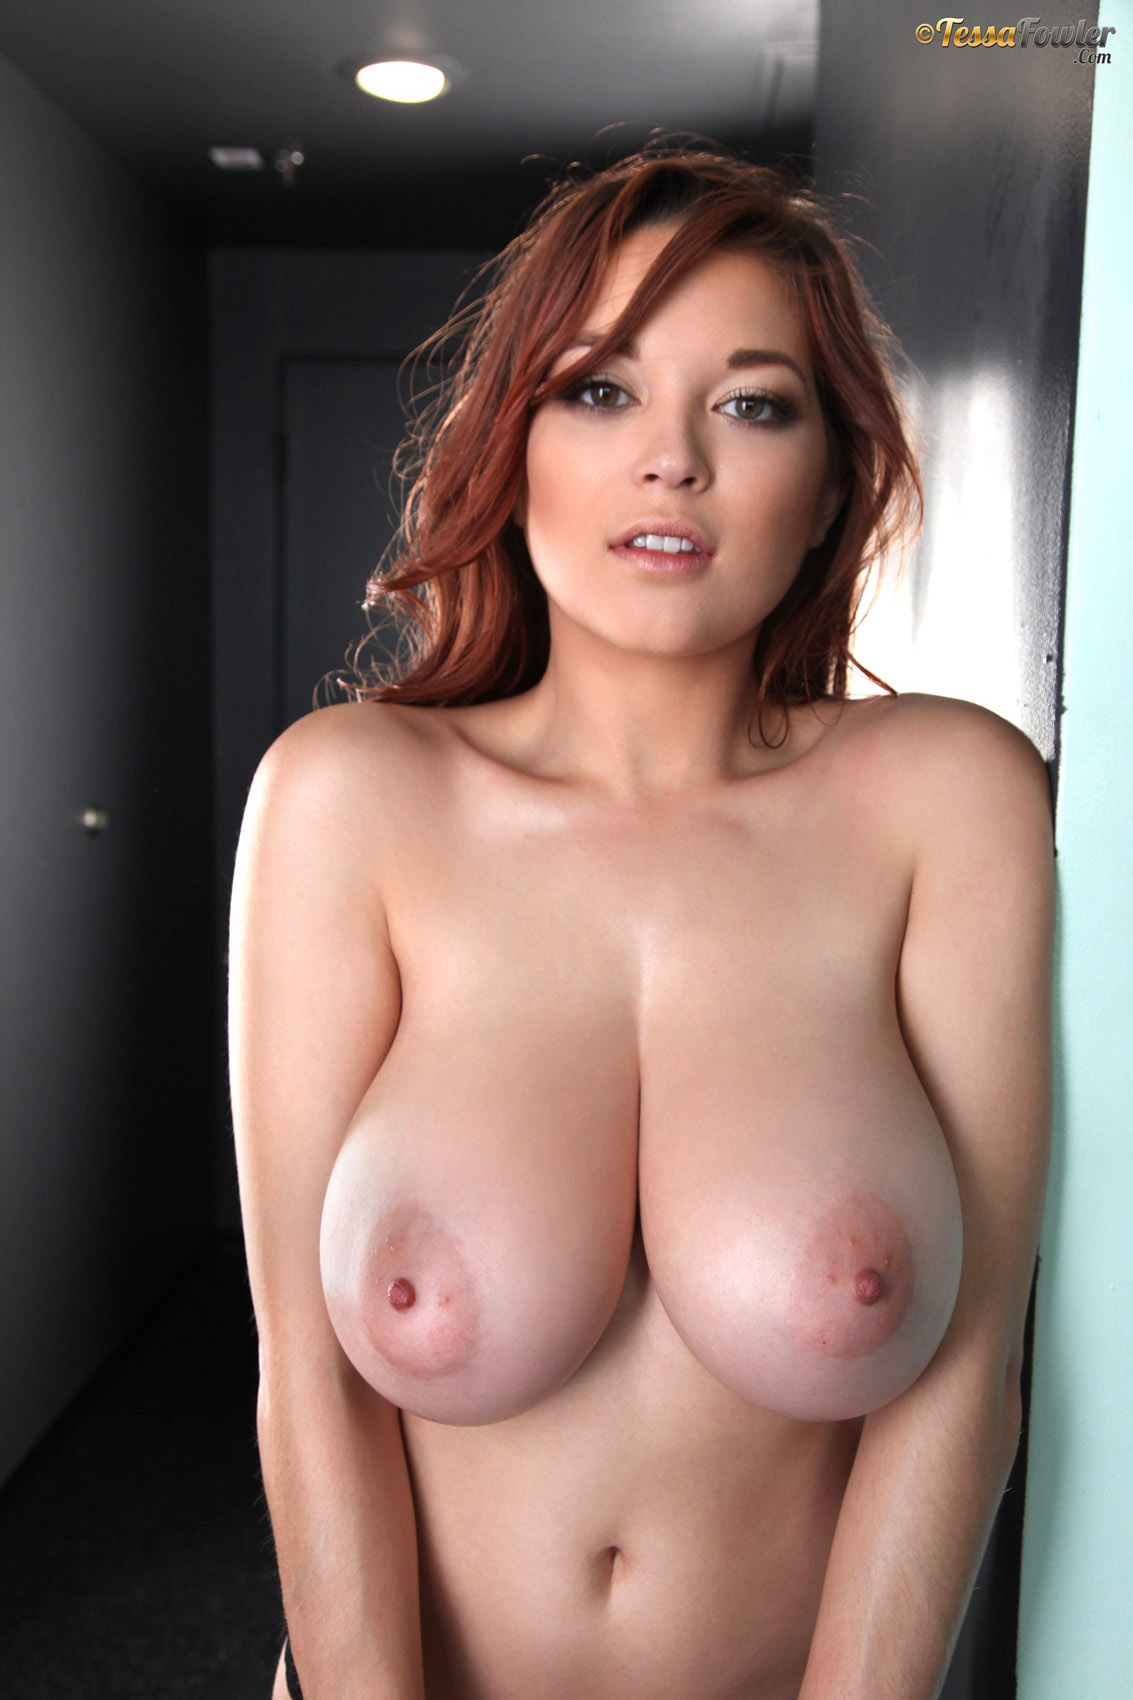 Tessa fowler boobs